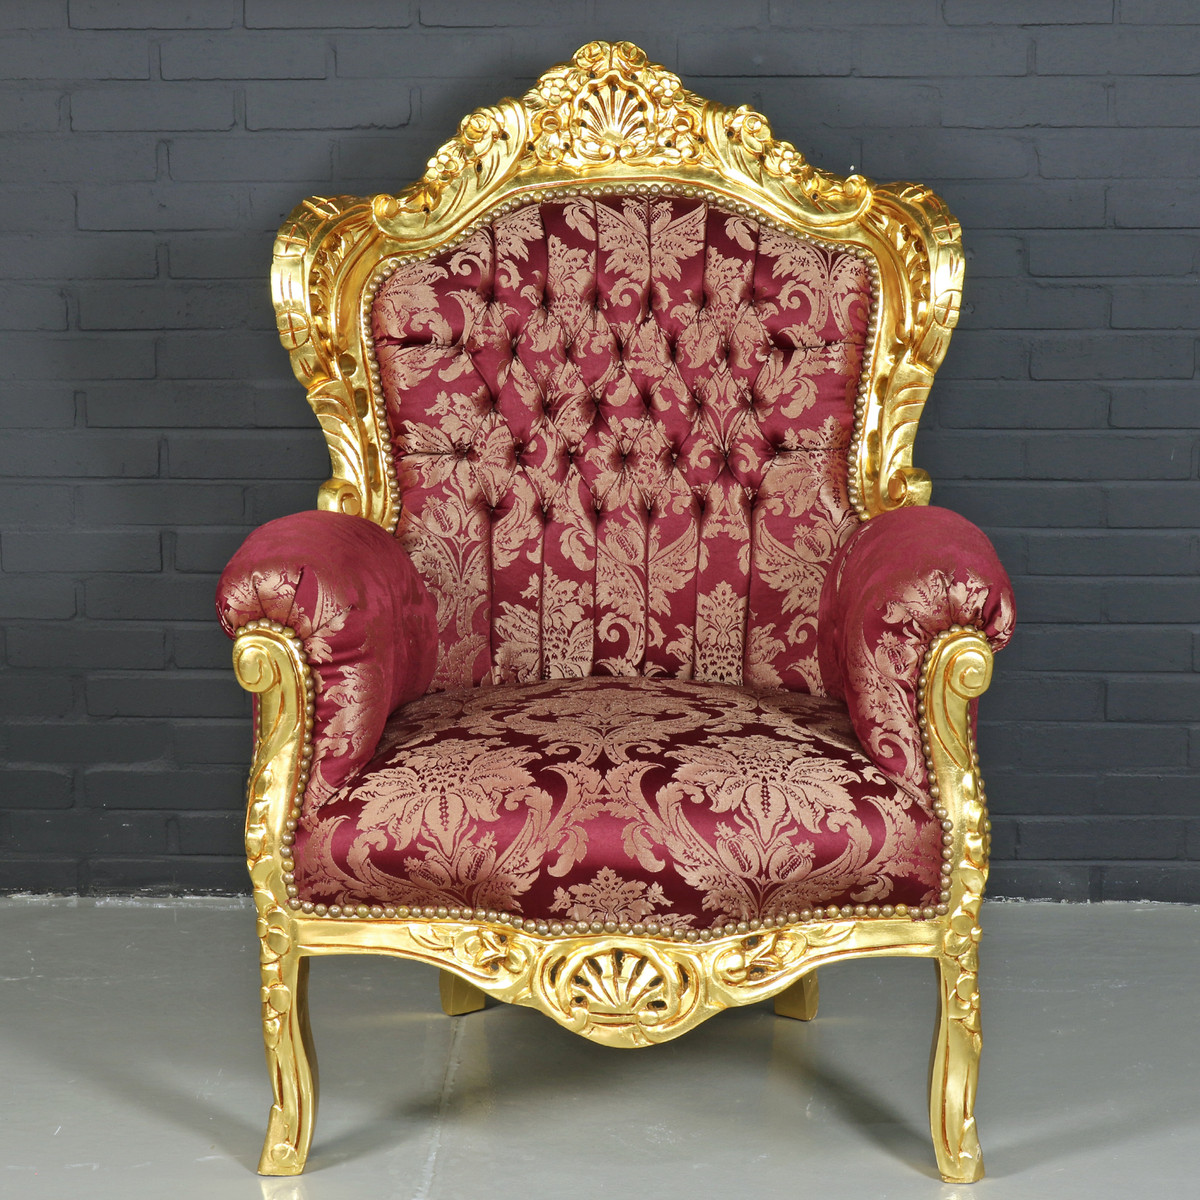 Casa padrino baroque armchair king bordeaux red pattern for Sessel barock